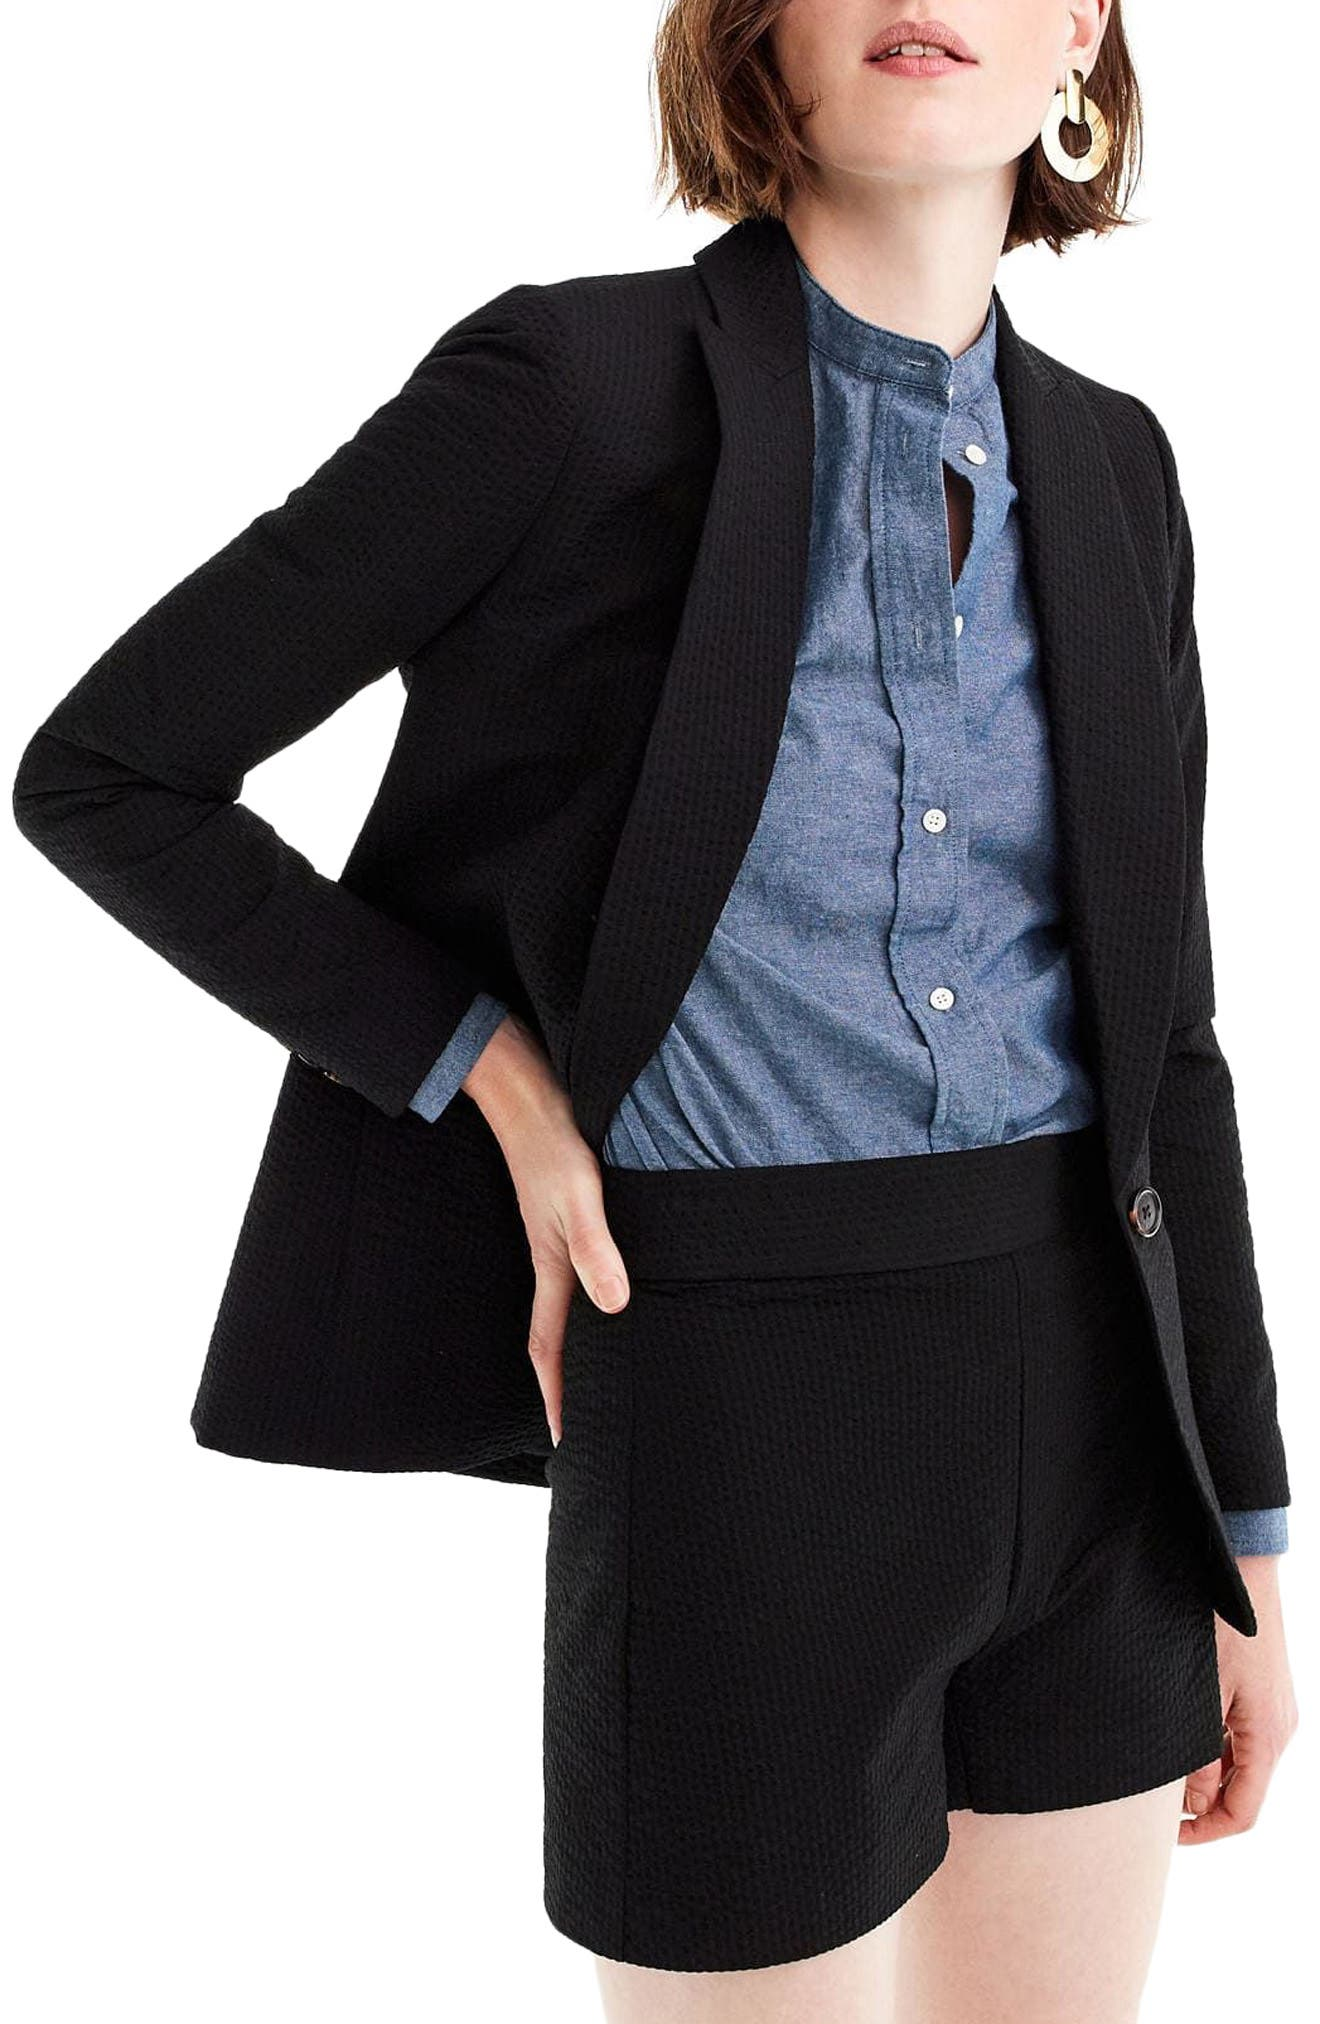 Eniko Seersucker Blazer,                             Main thumbnail 1, color,                             001